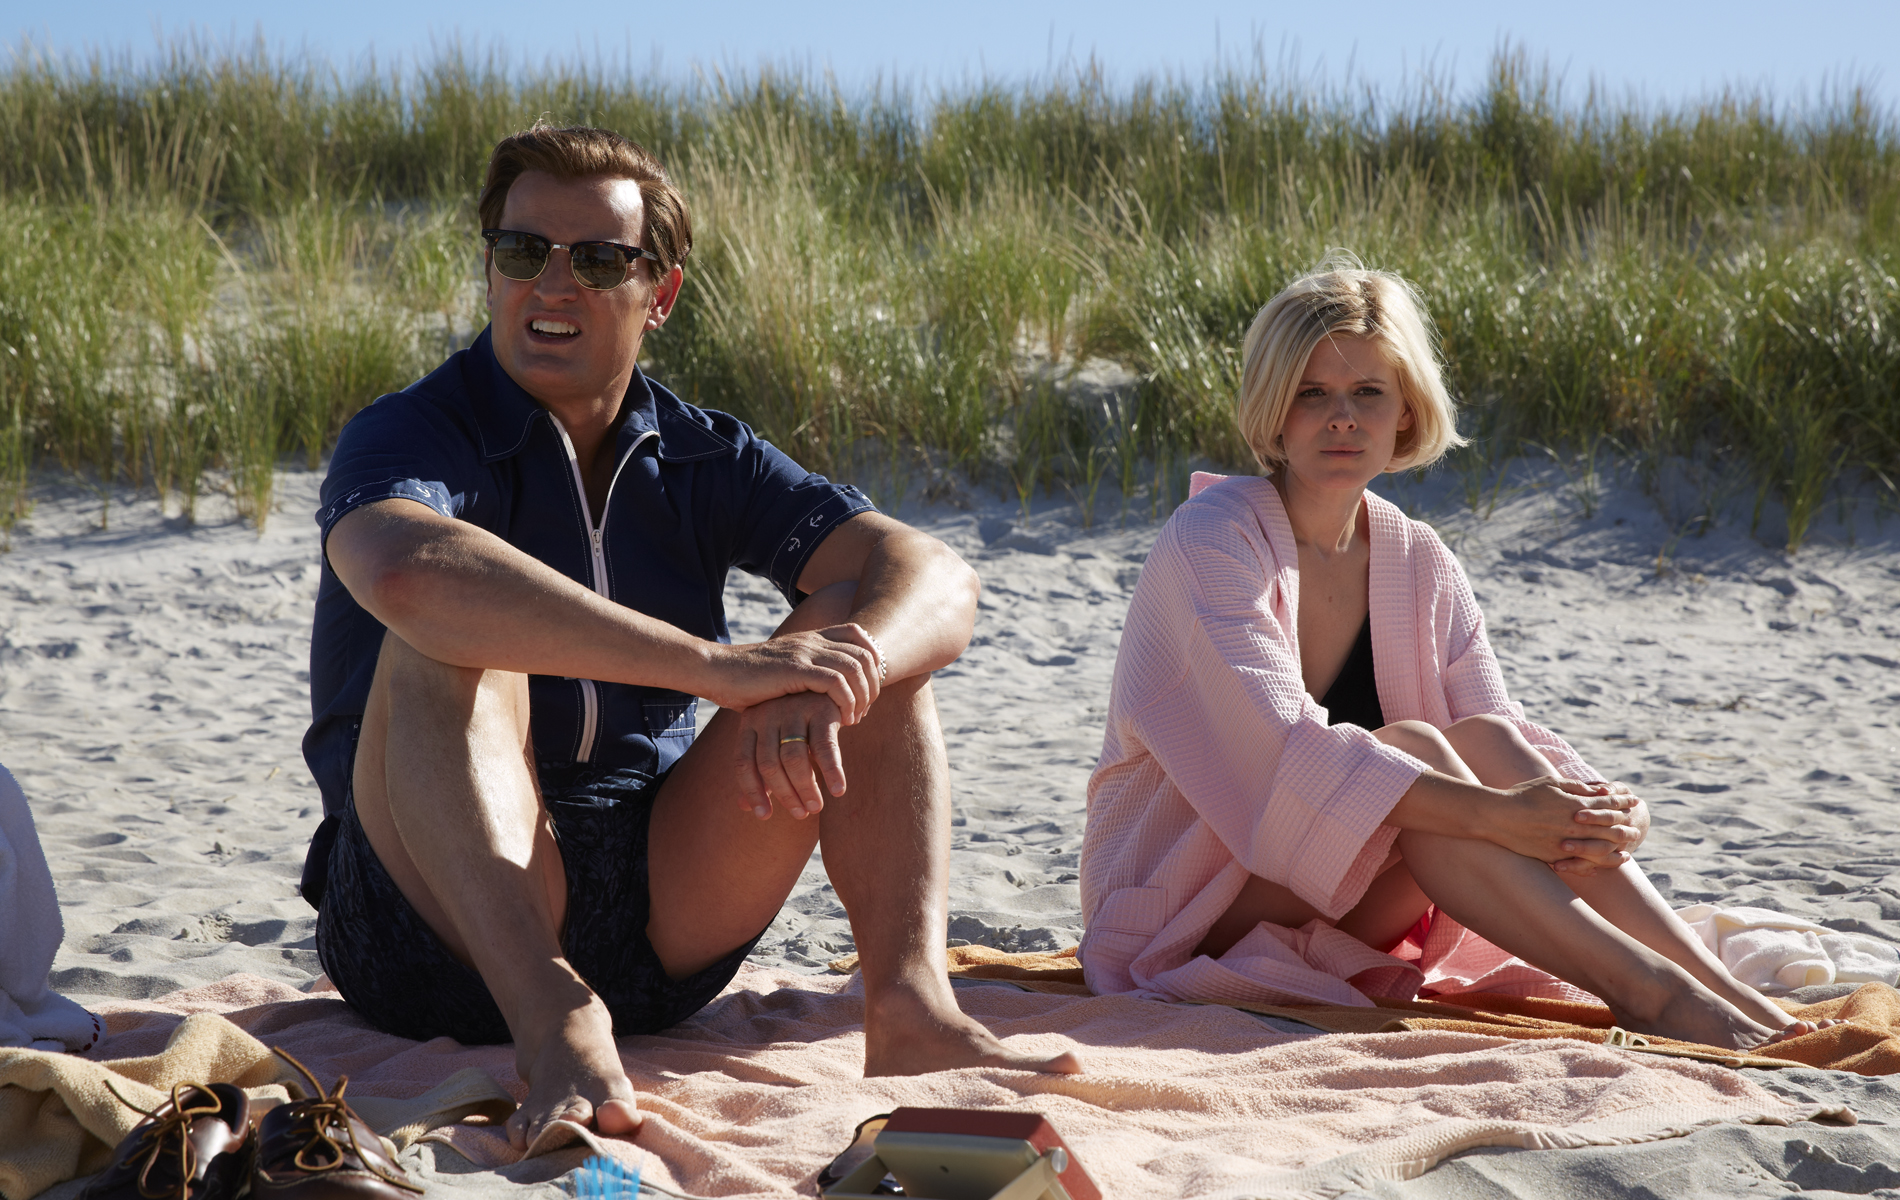 Chappaquiddick ©2018EntertainmentStudios